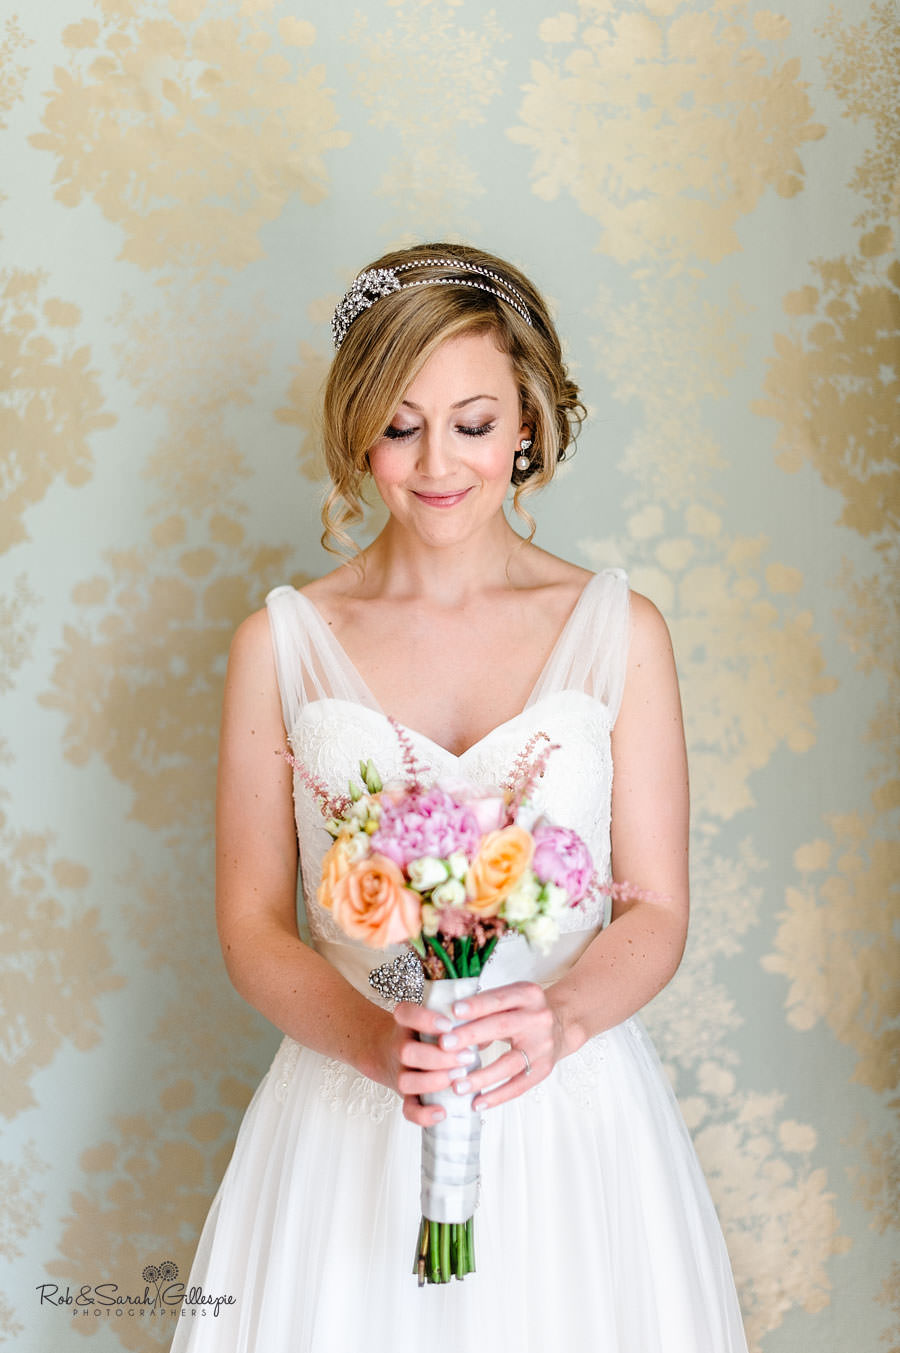 portrait of bride looking at bouquet in front of patterned wallpaper